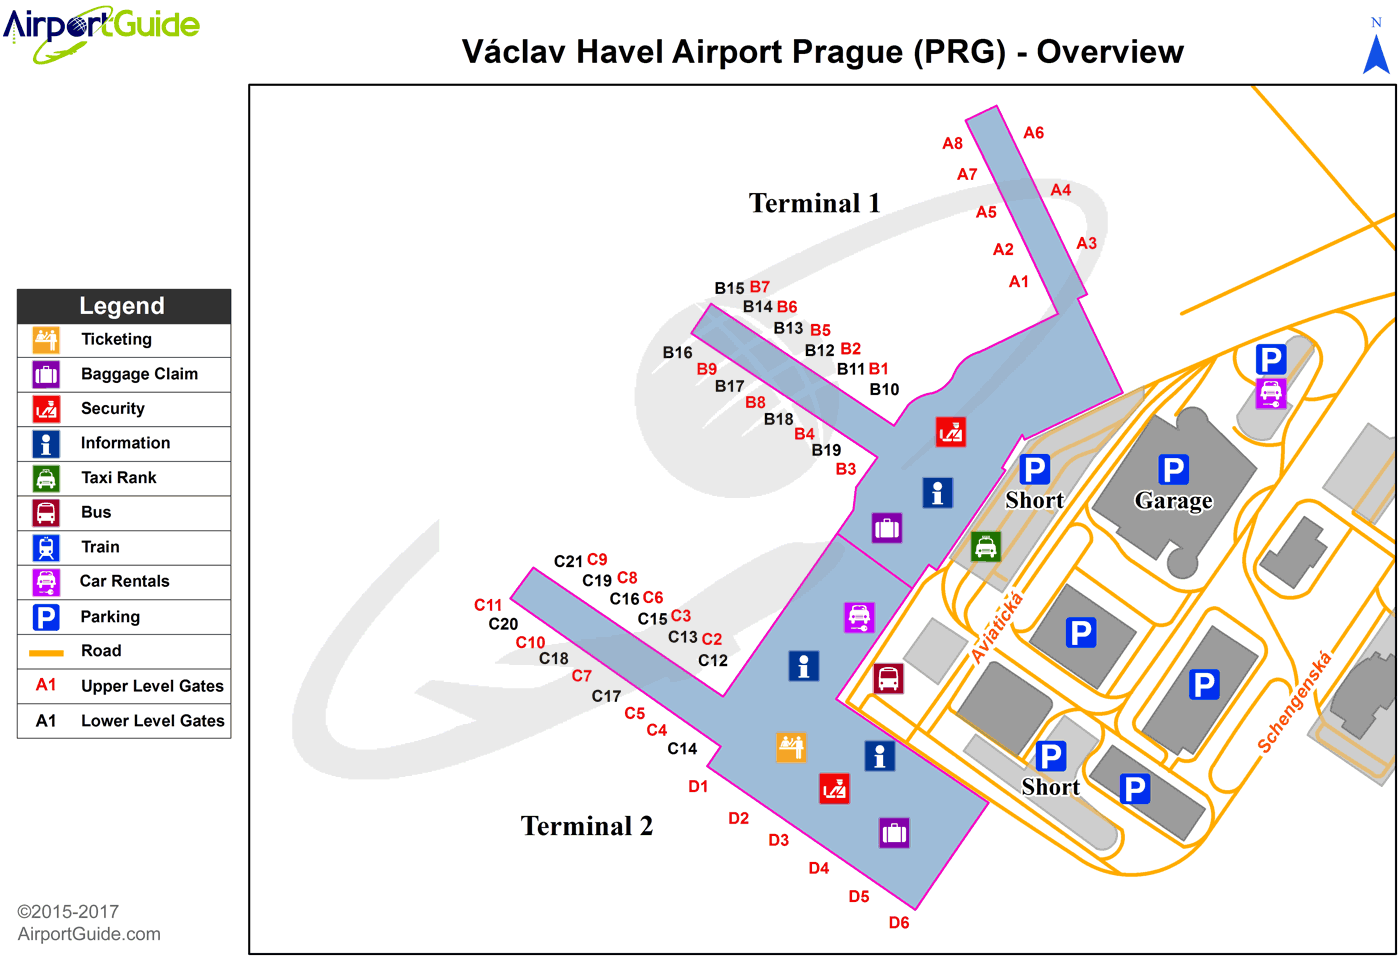 Prague - Václav Havel (PRG) Airport Terminal Map - Overview